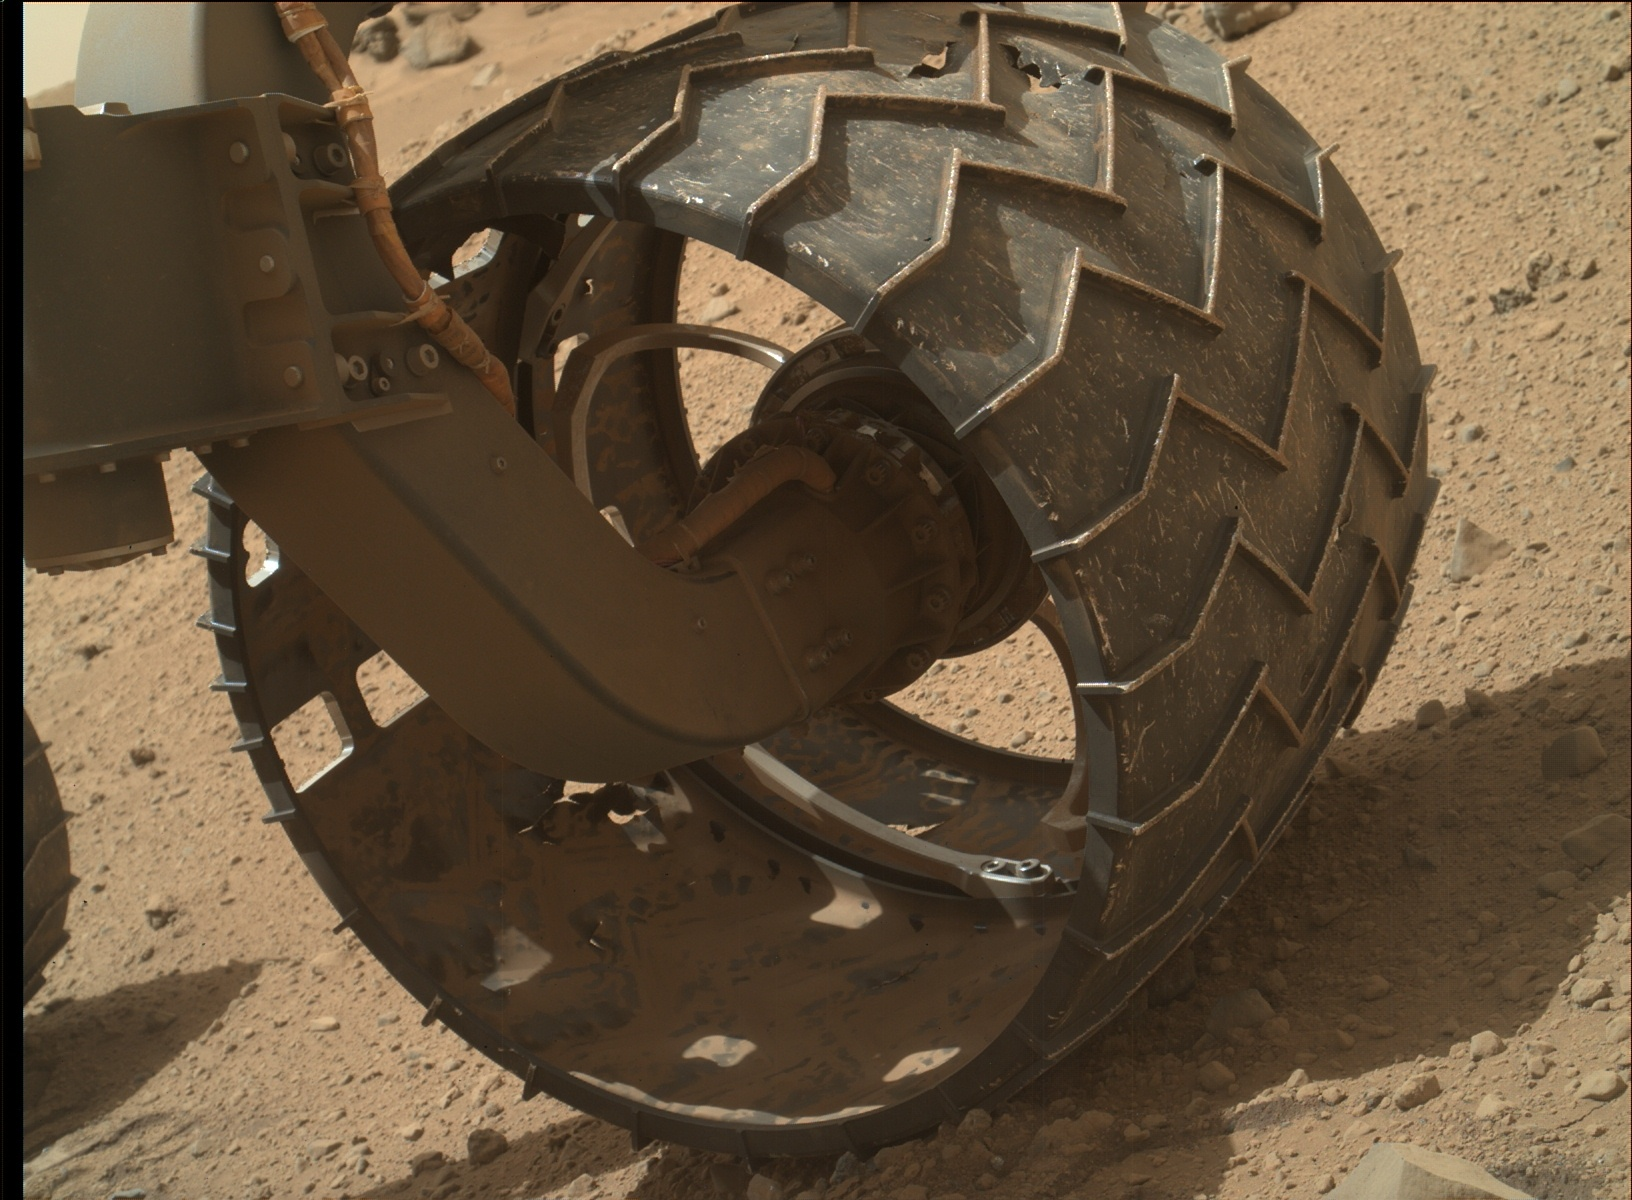 Mars Rover's Wheel Wear and Tear